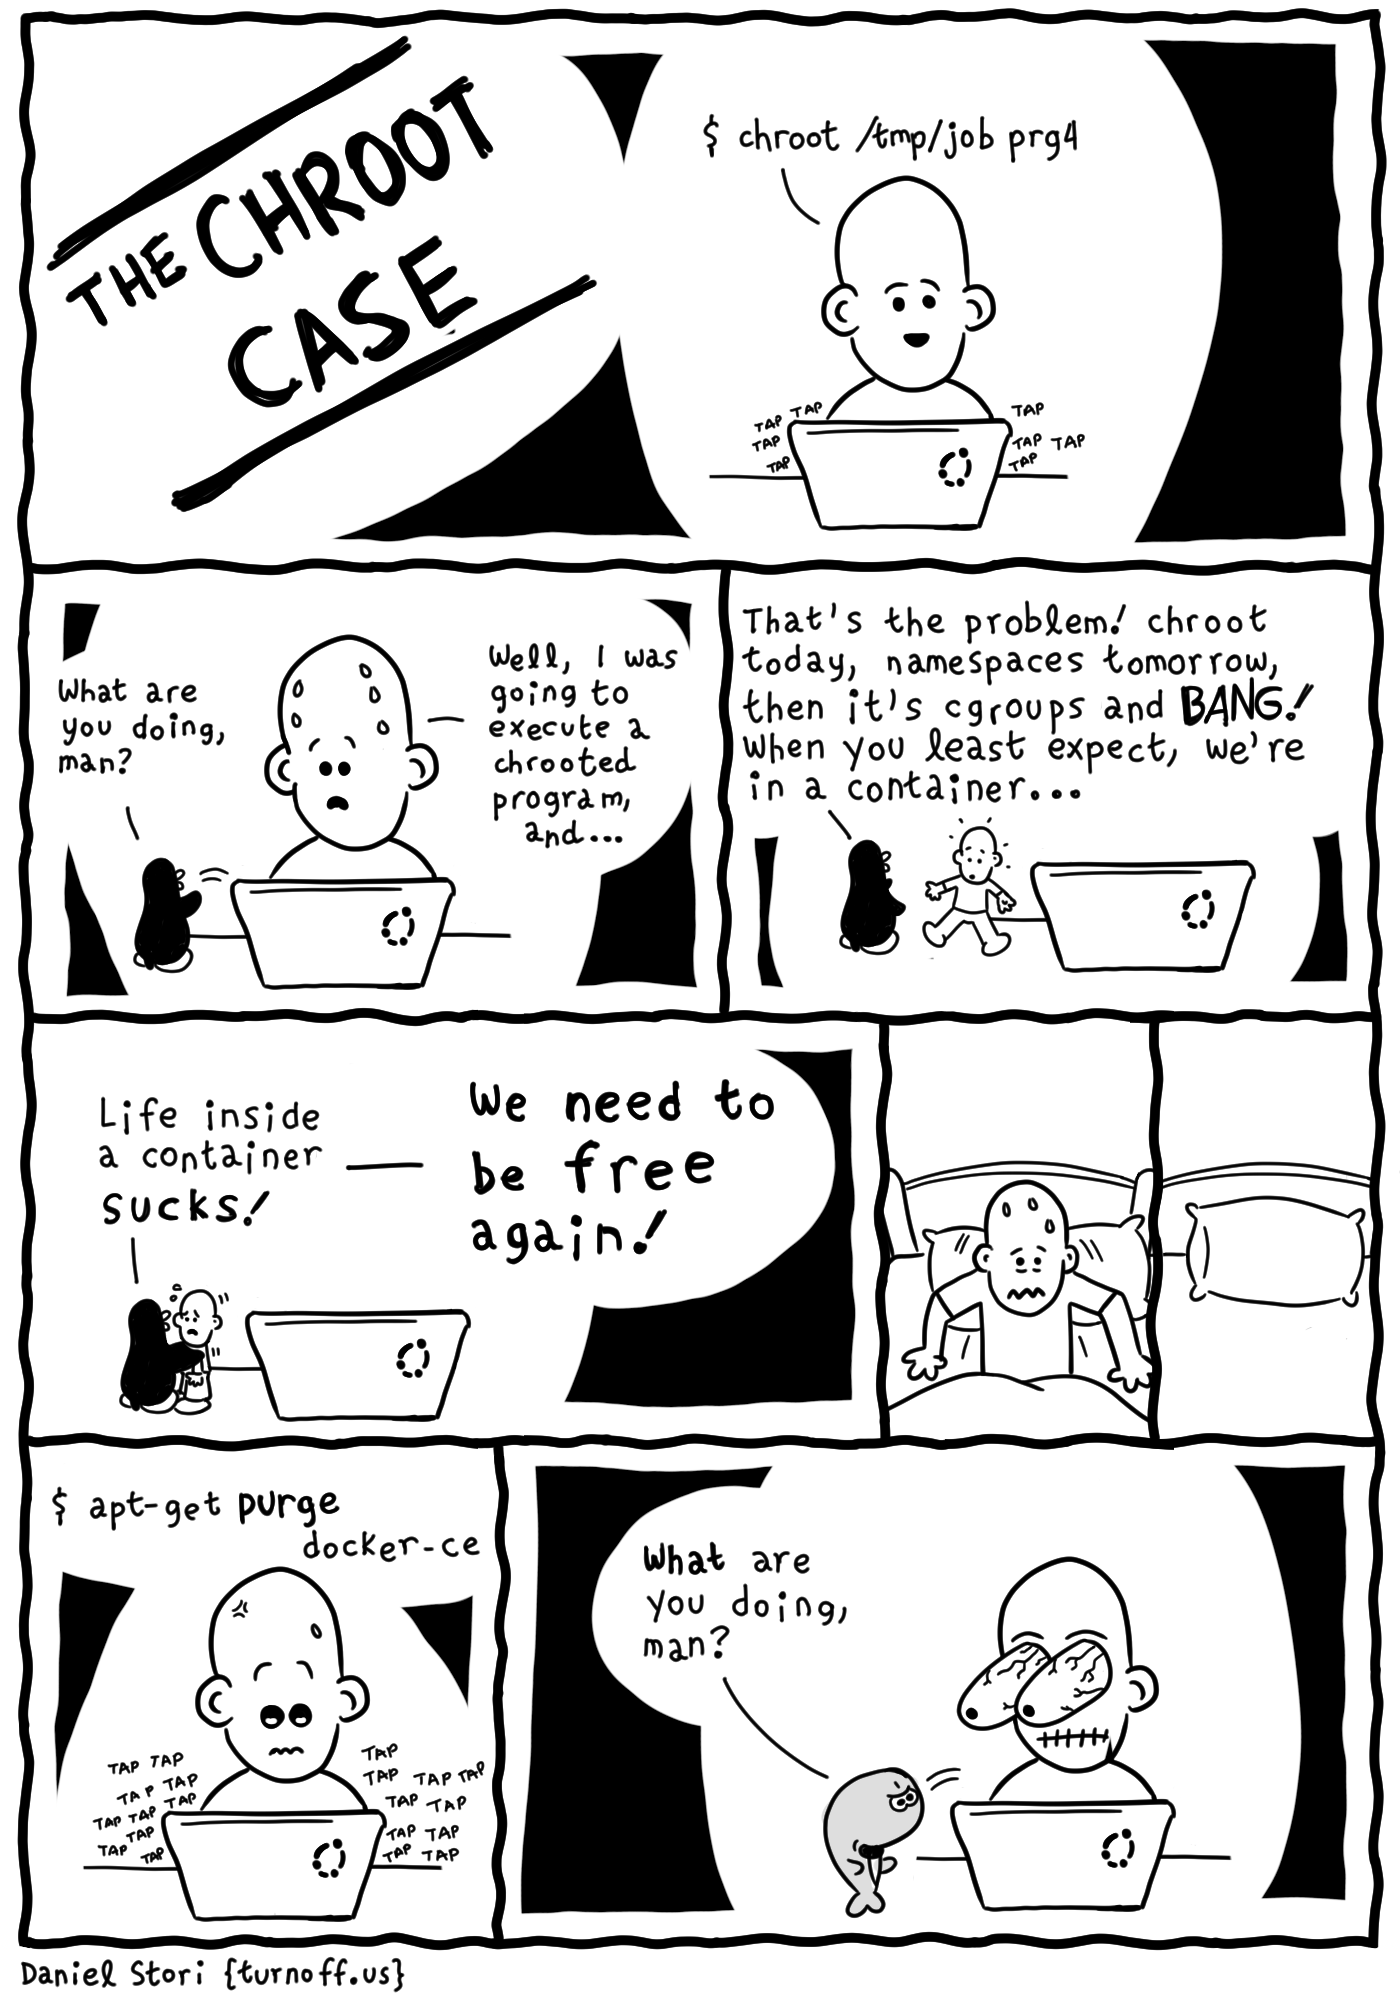 the chroot case geek comic